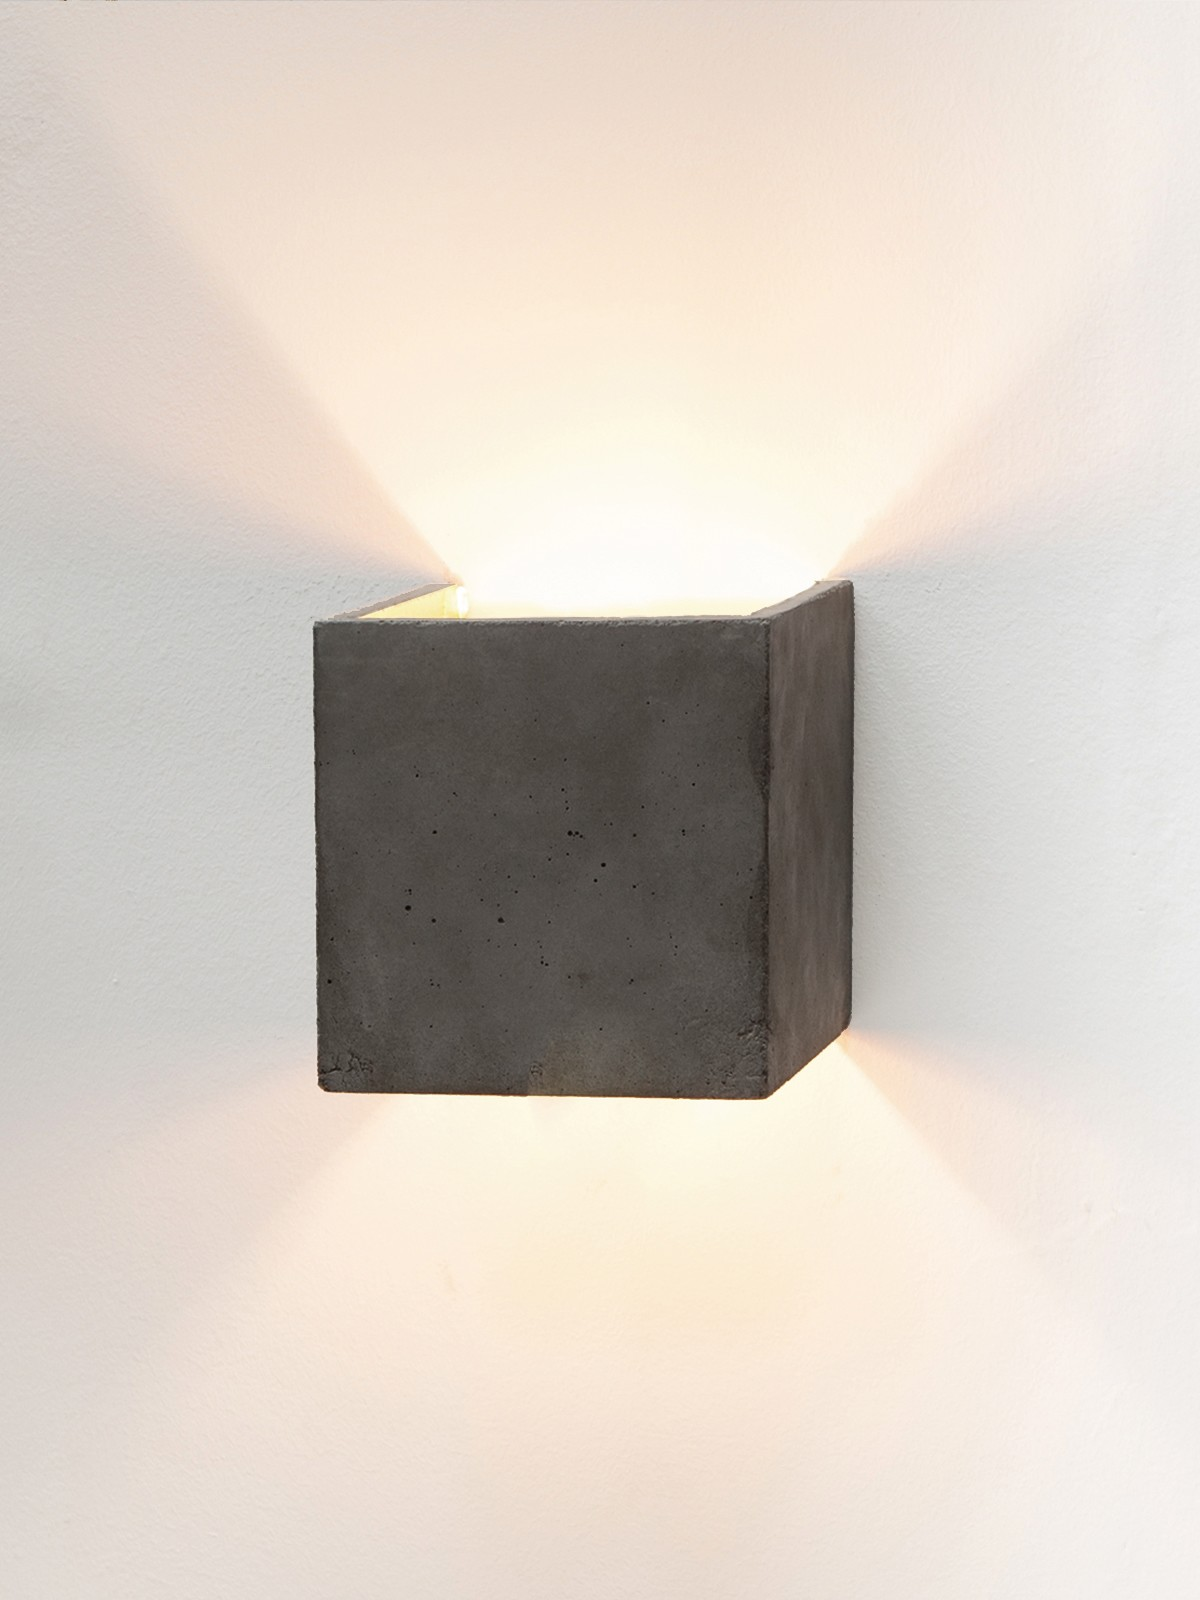 [B3] Wall Light Cubic Dark Grey Concrete, Gold Plating